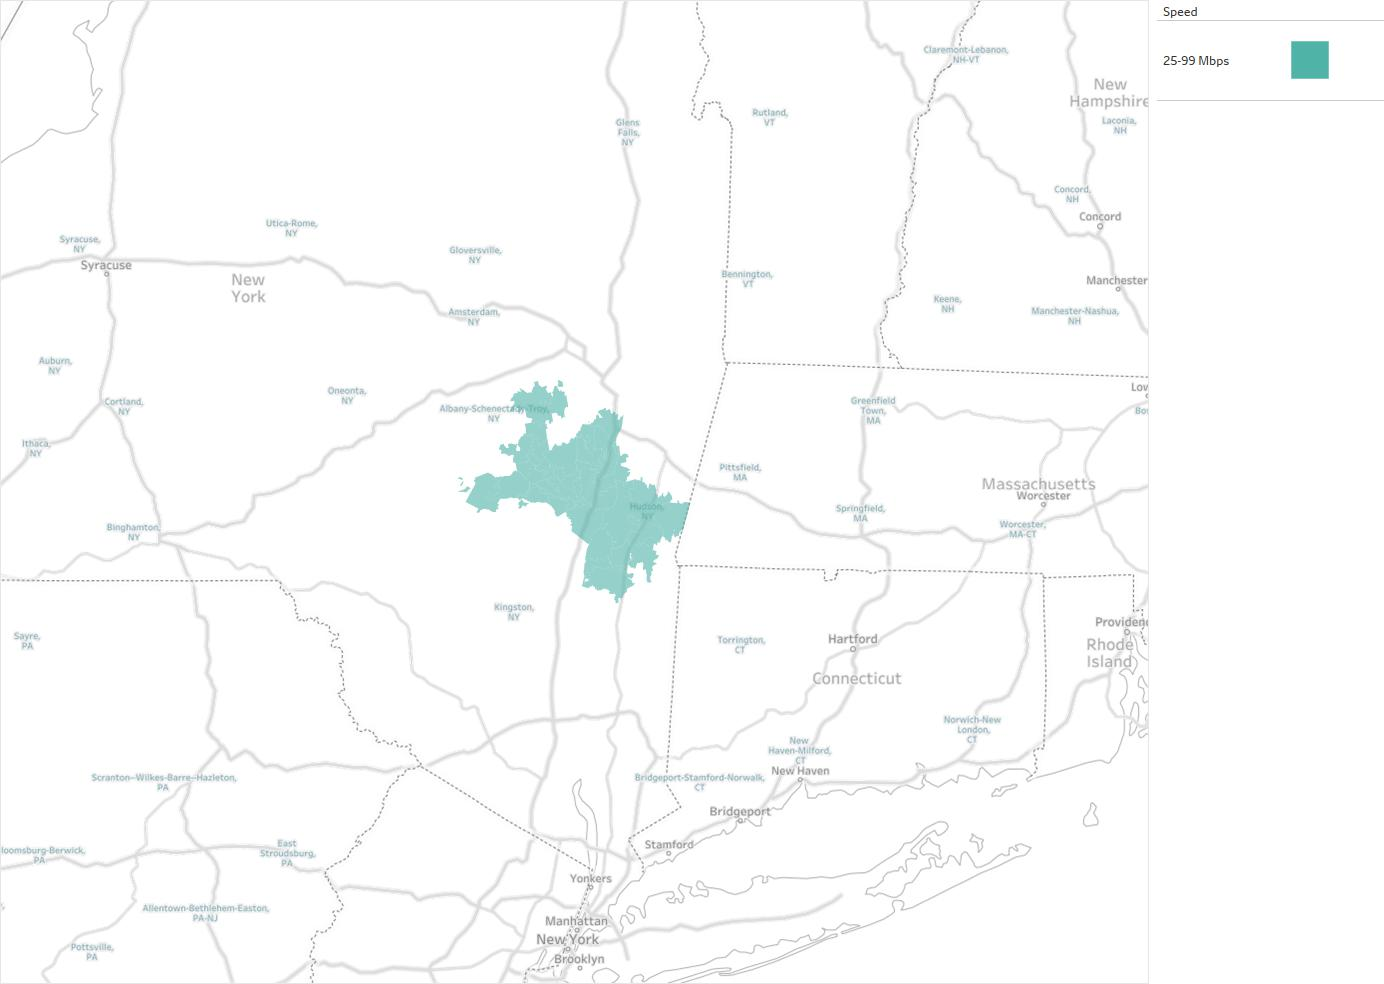 Mid-Hudson CableVision Availability Areas & Coverage Map